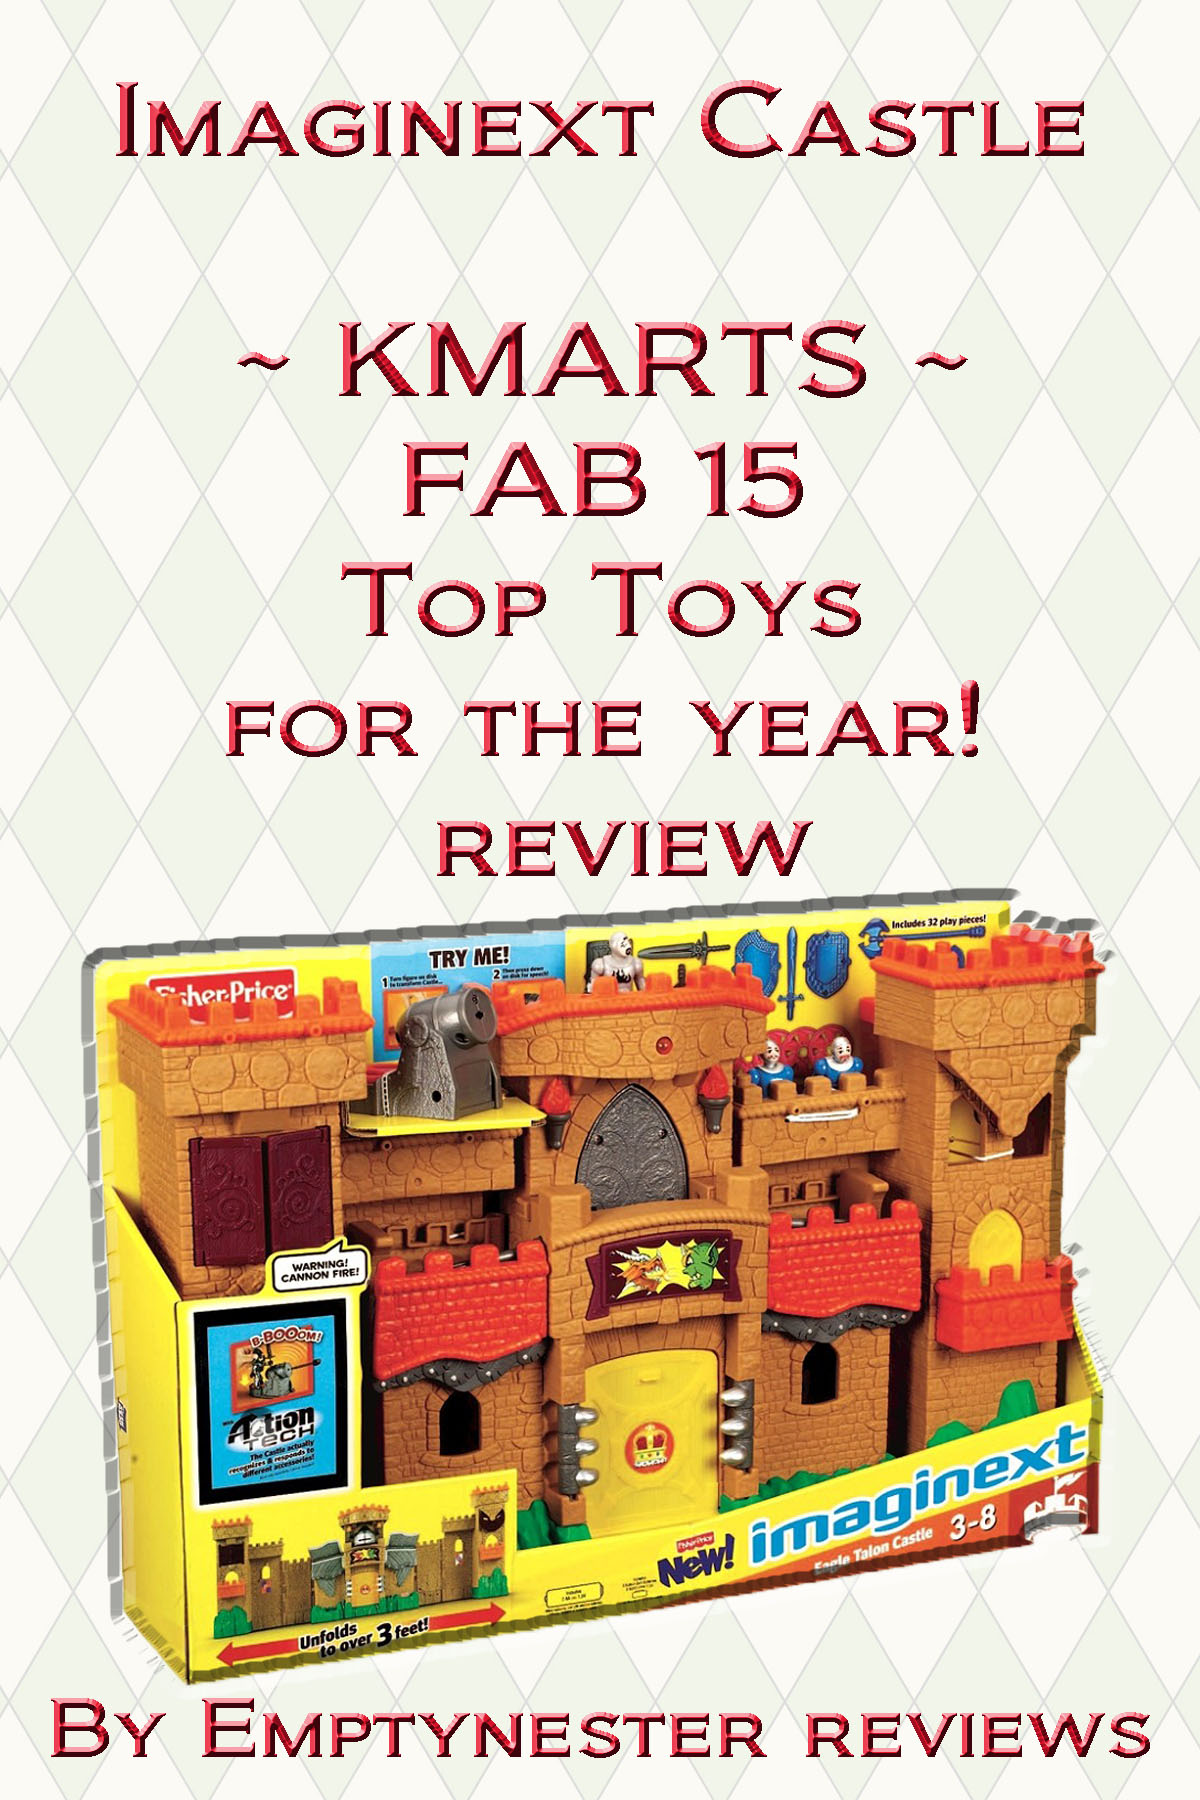 Imaginext Eagle Talon Castle ~ KMARTS FAB15 Top Toys for the year! My review